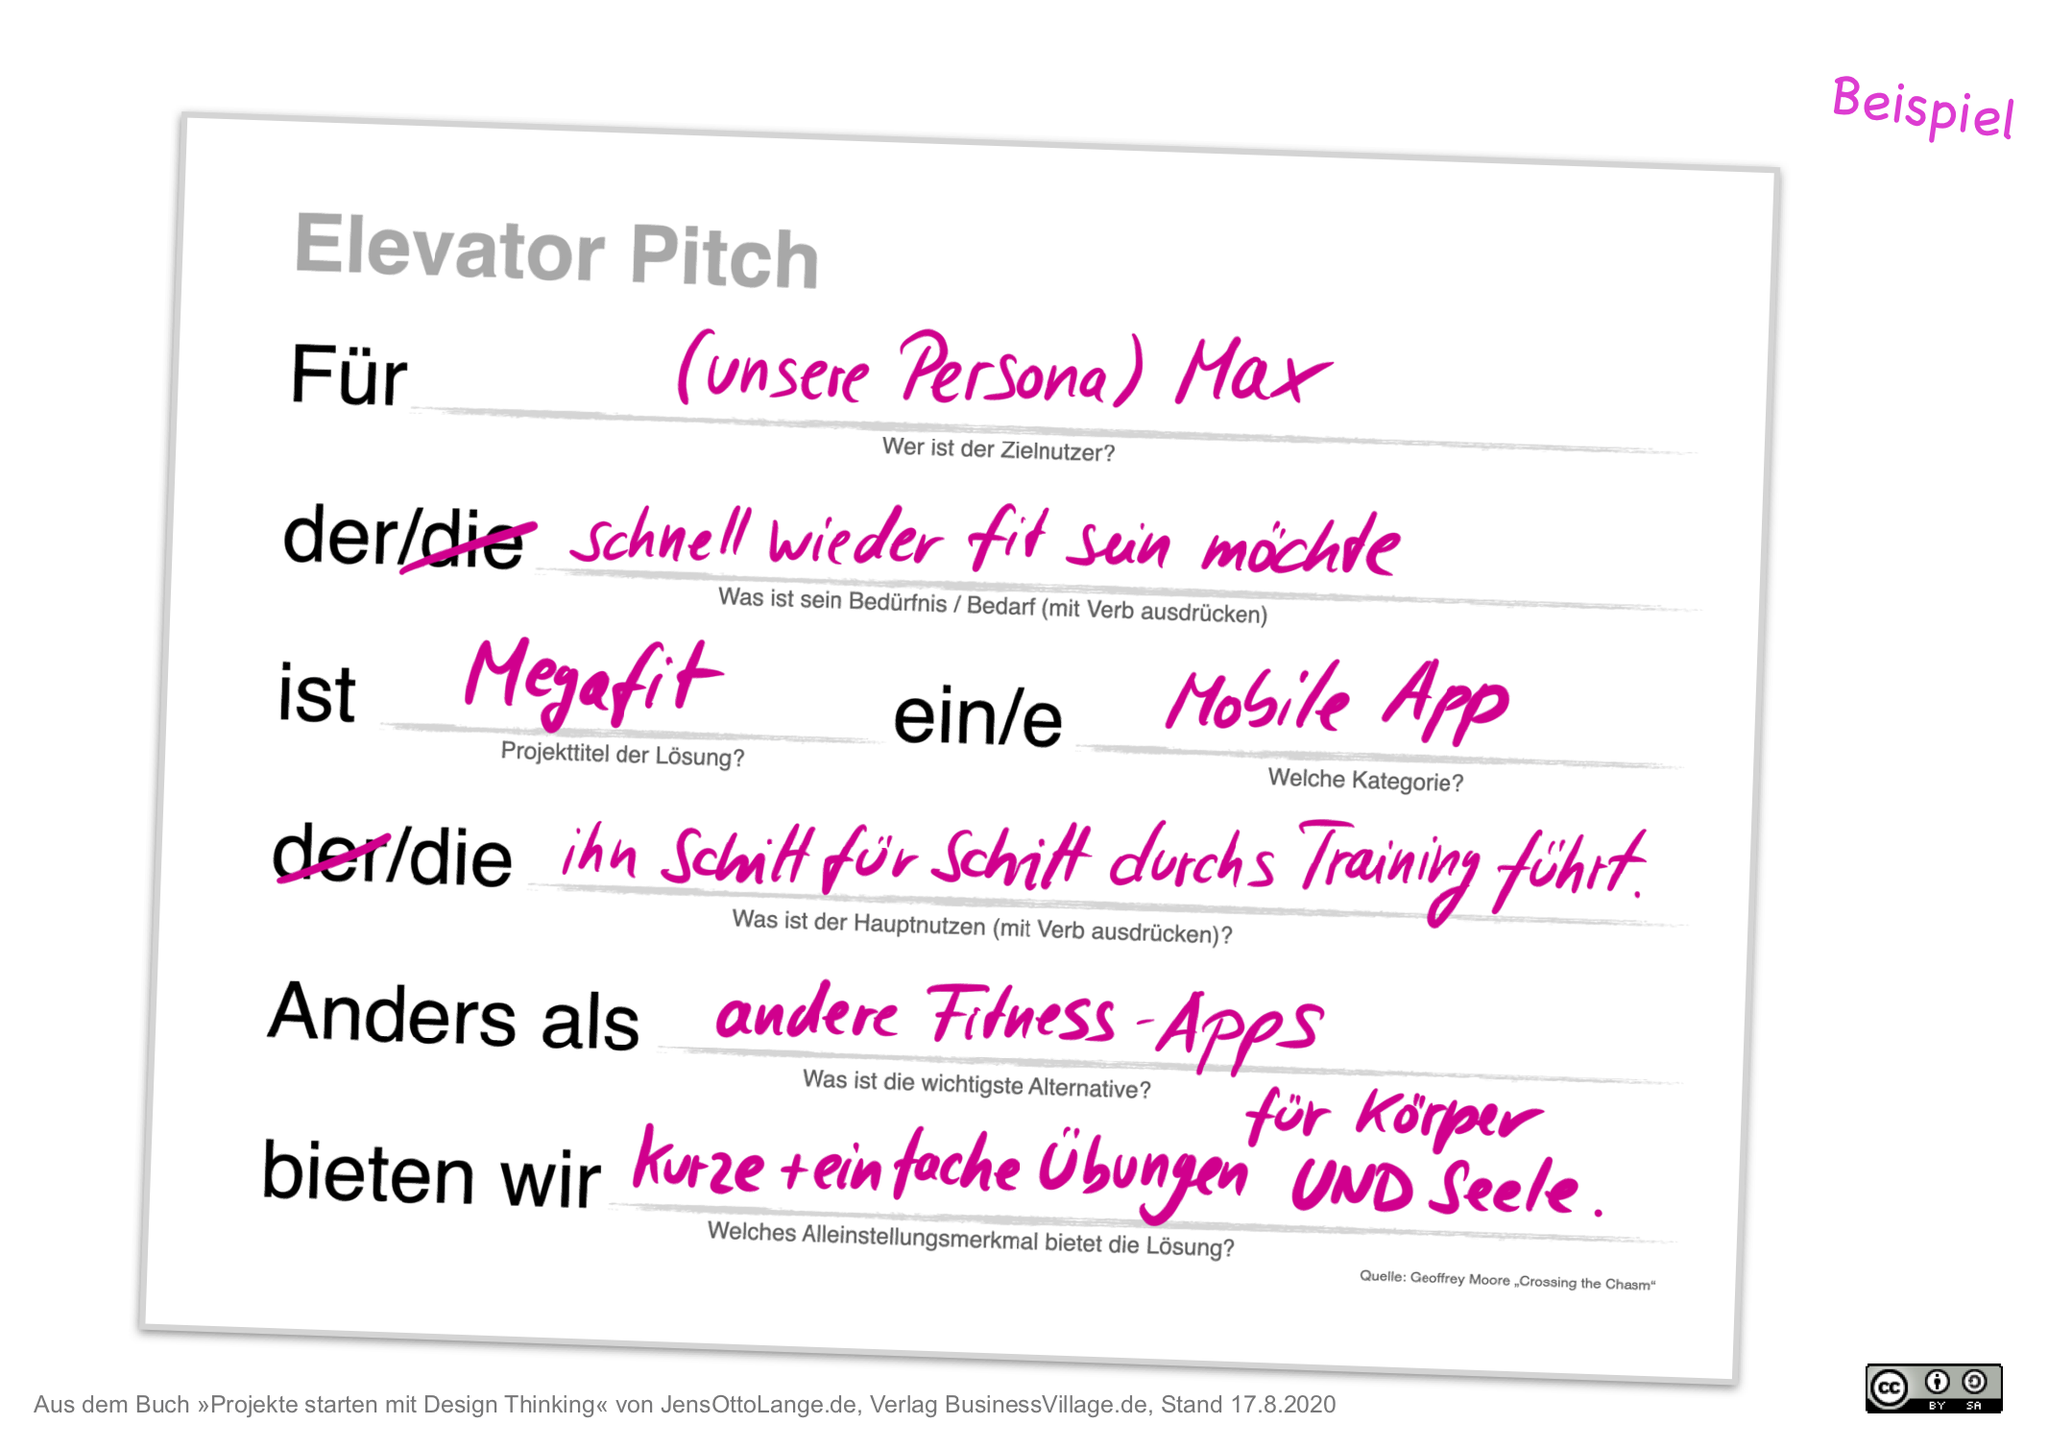 17. »Elevator-Pitch«-Template für Pitch-Design herunterladen